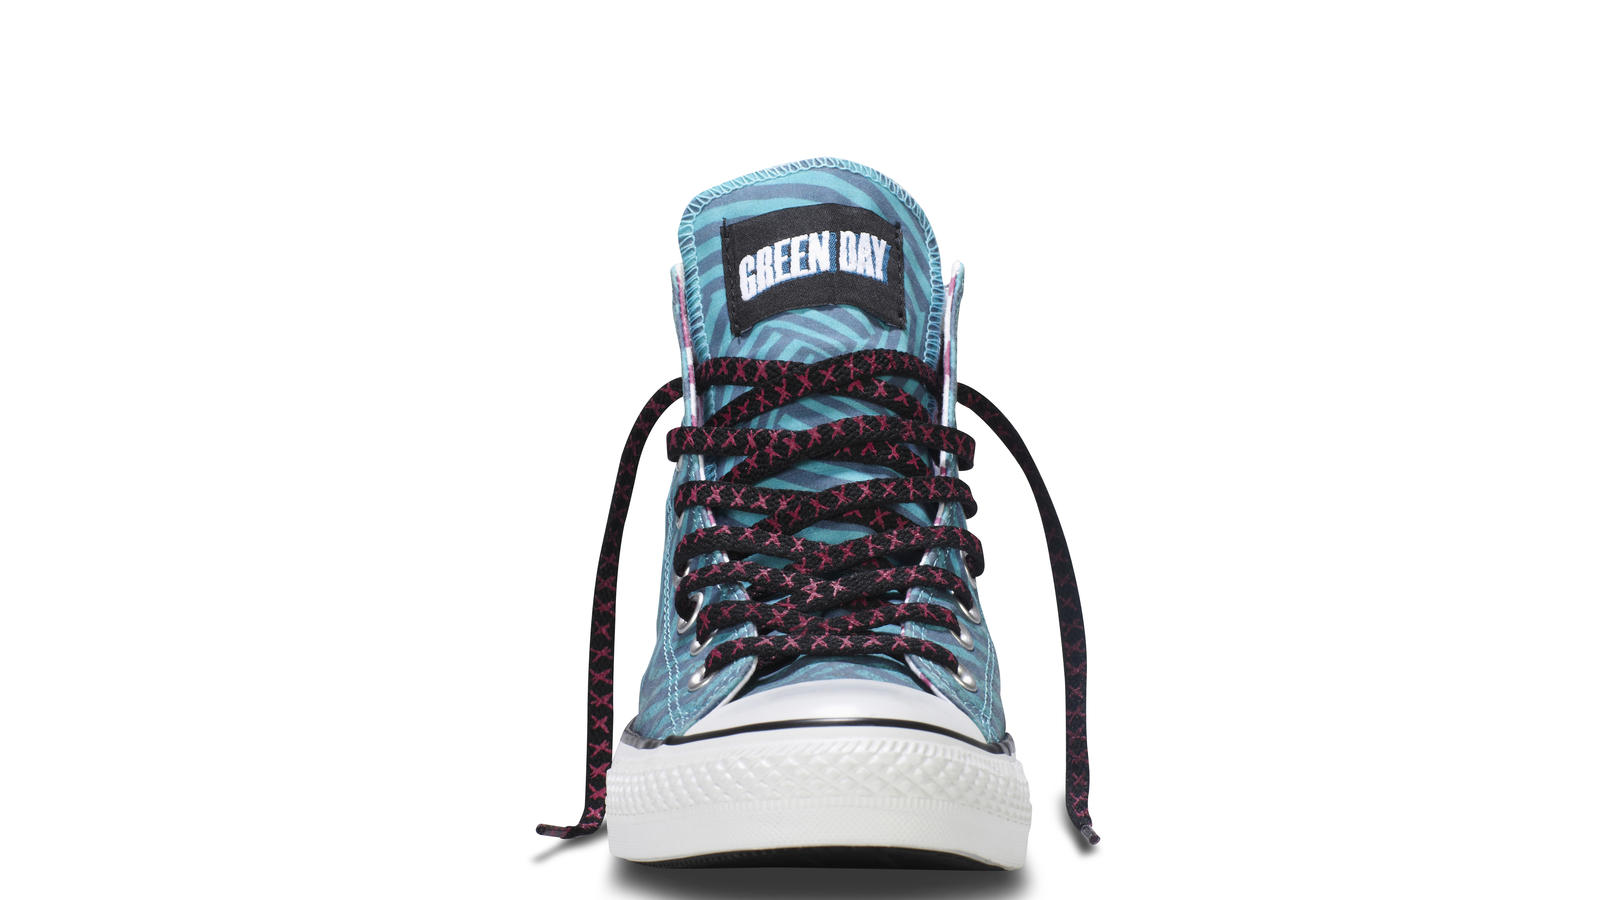 ee9ccb7b4801 Converse unveils latest sneaker inspired by Green Day s album ...